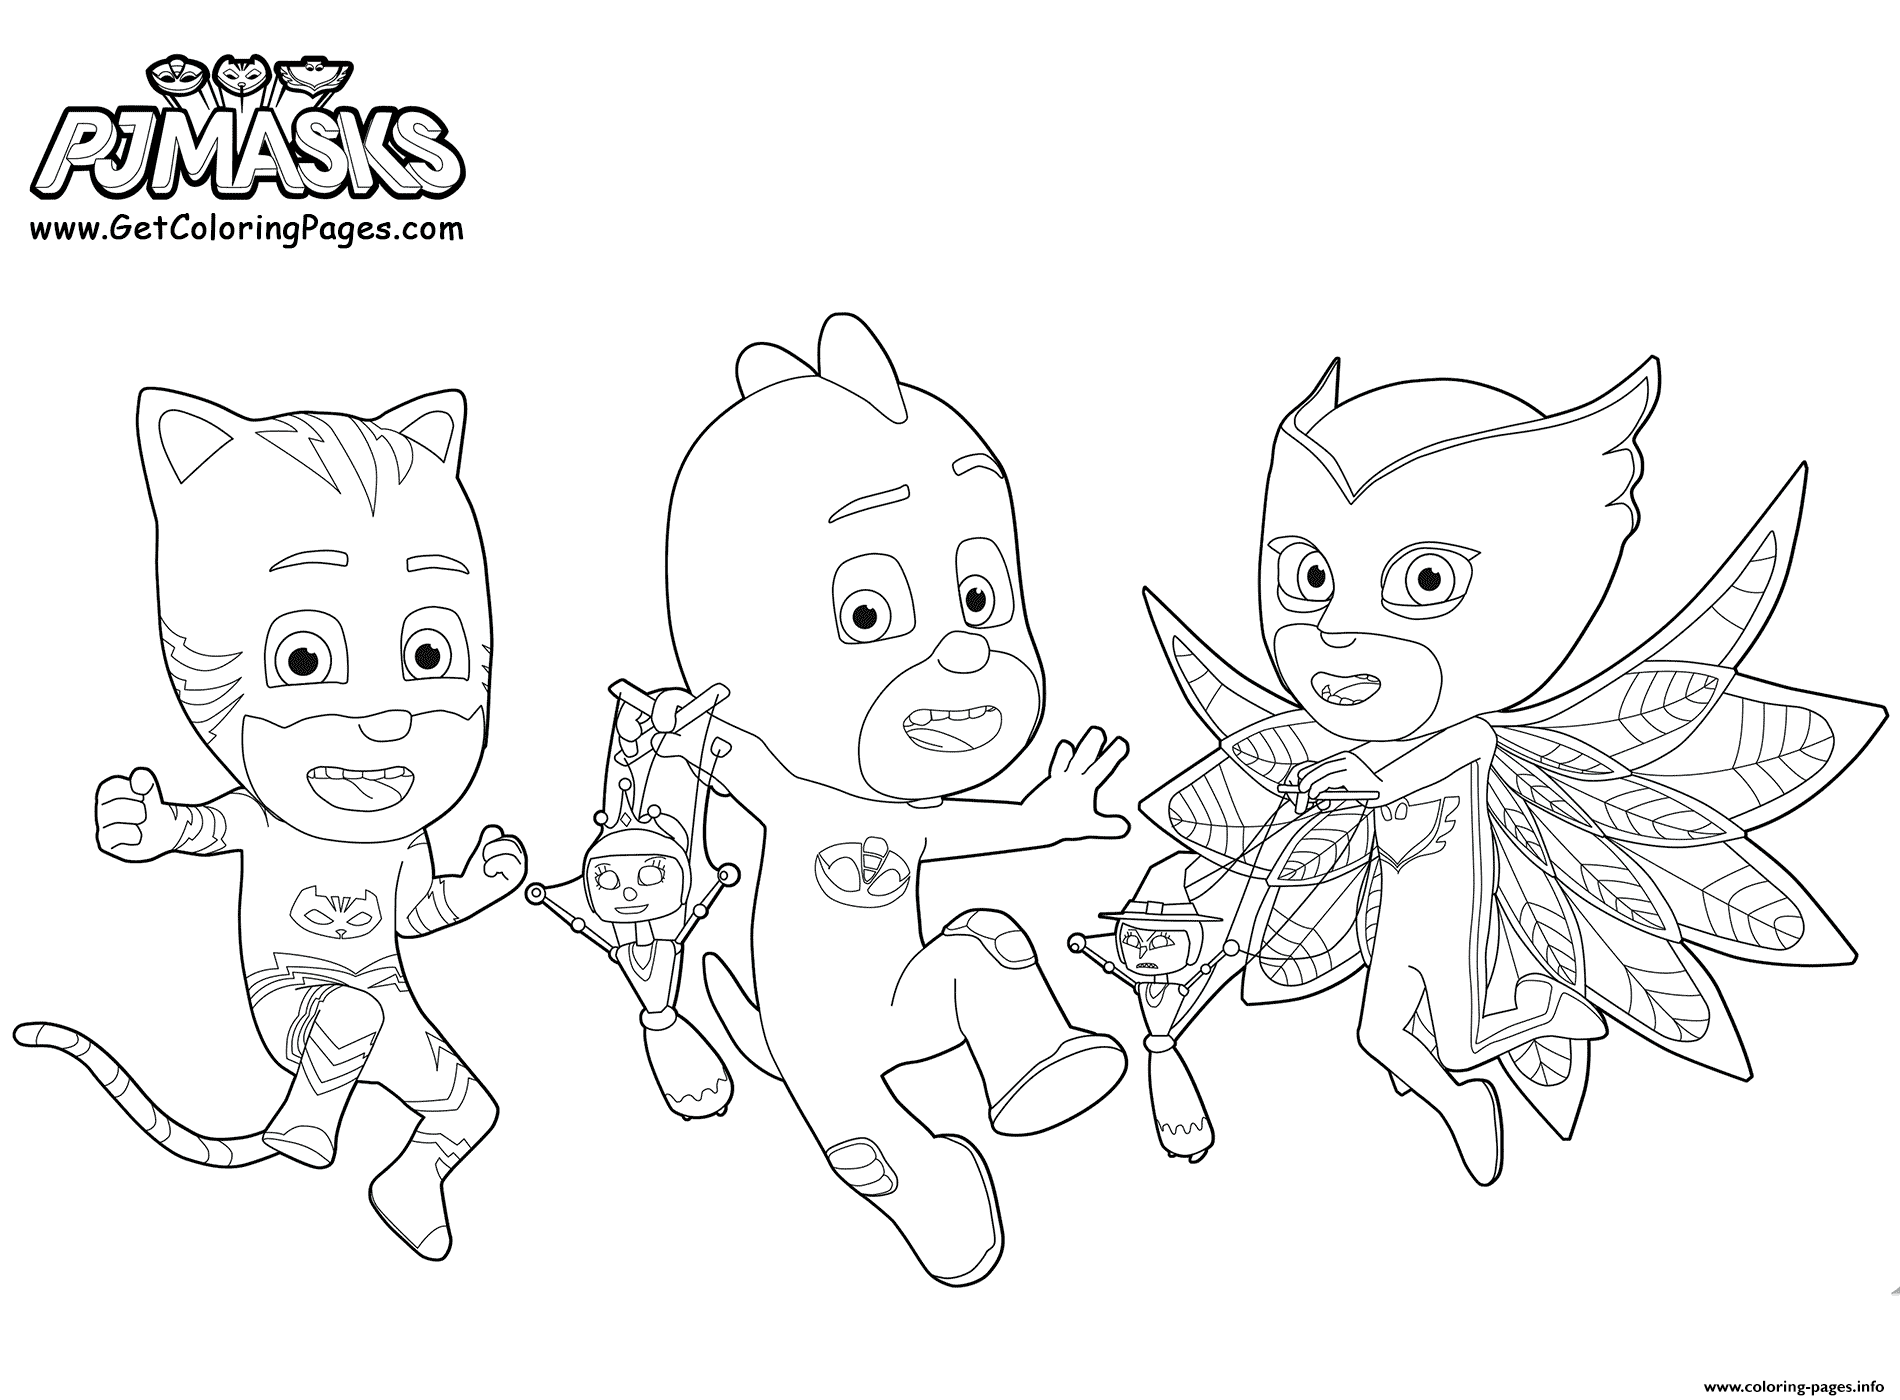 pj masks coloring pages free printable - printable pj masks party coloring pages printable